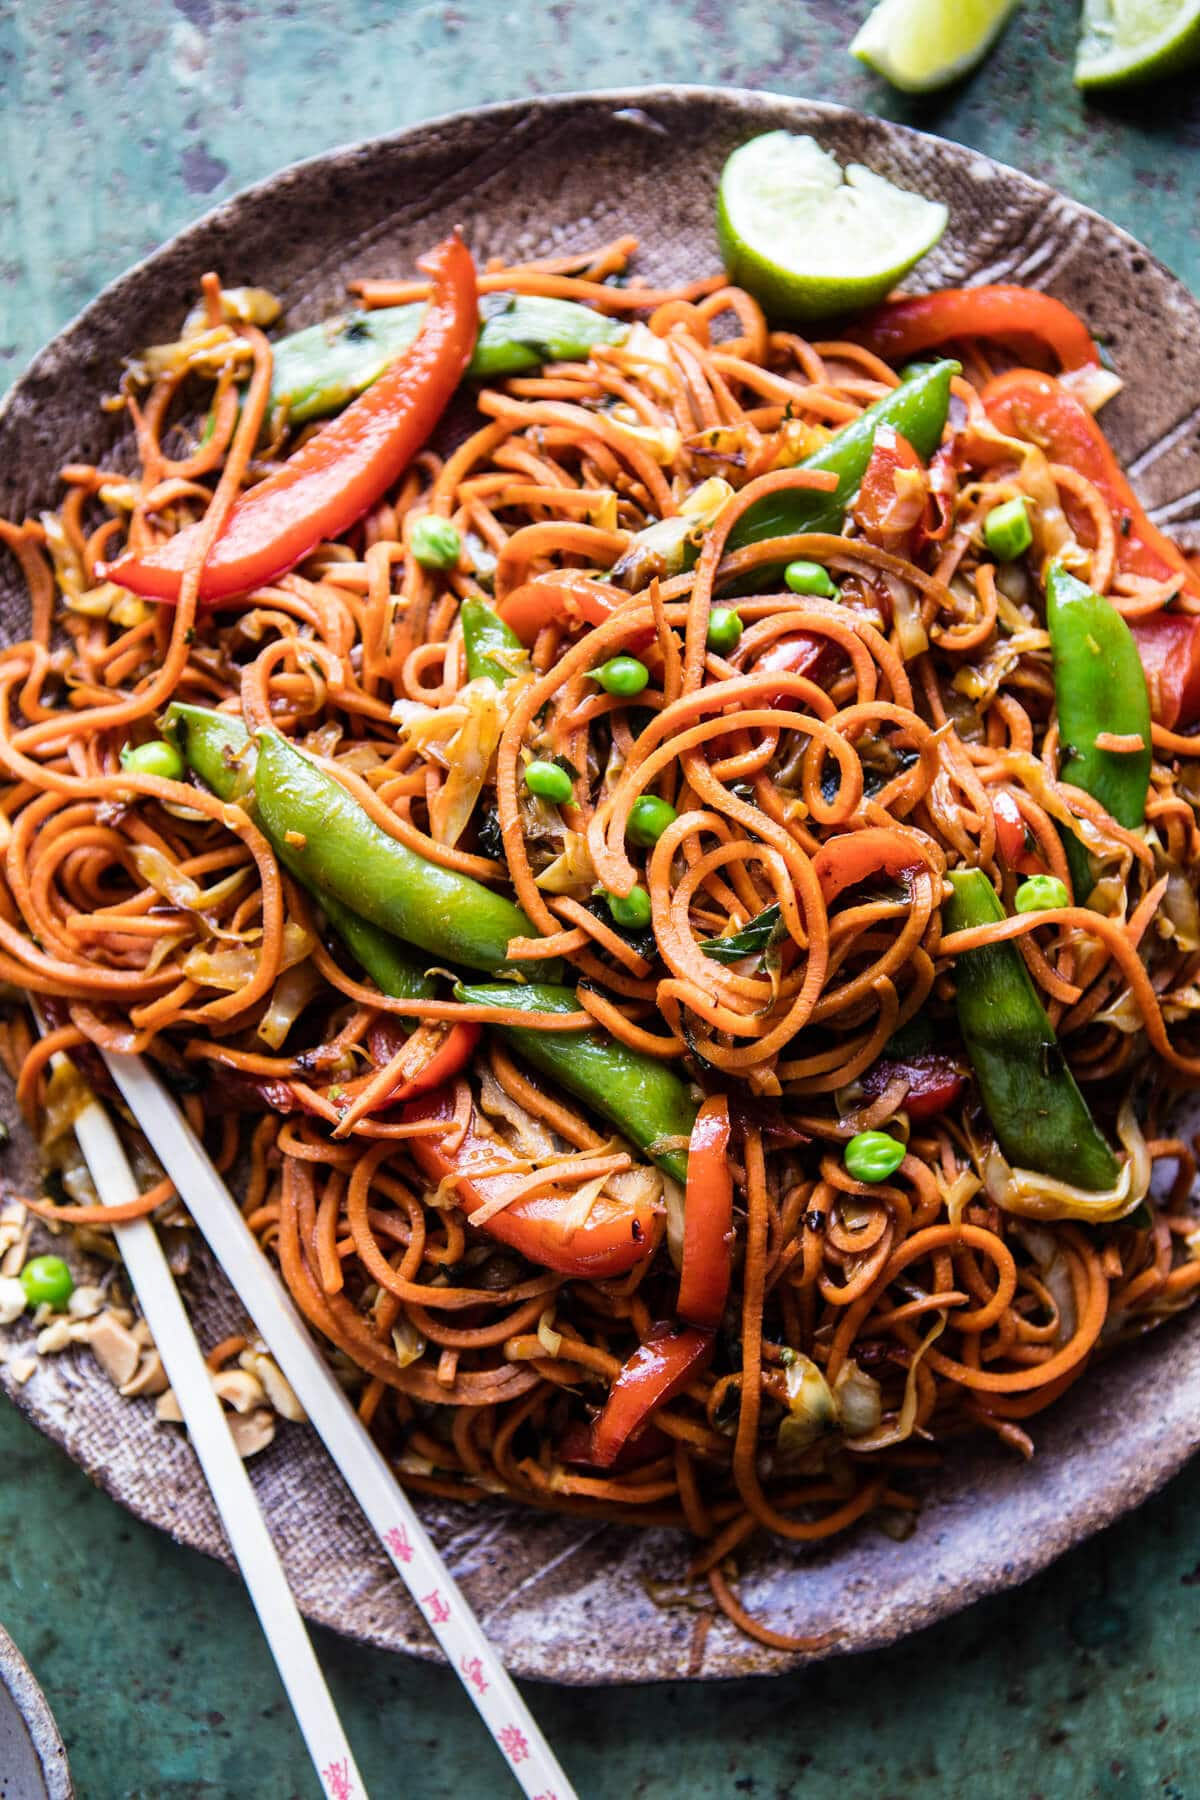 Sweet Potato Noodles Recipe  Singapore Sweet Potato Noodles Half Baked Harvest